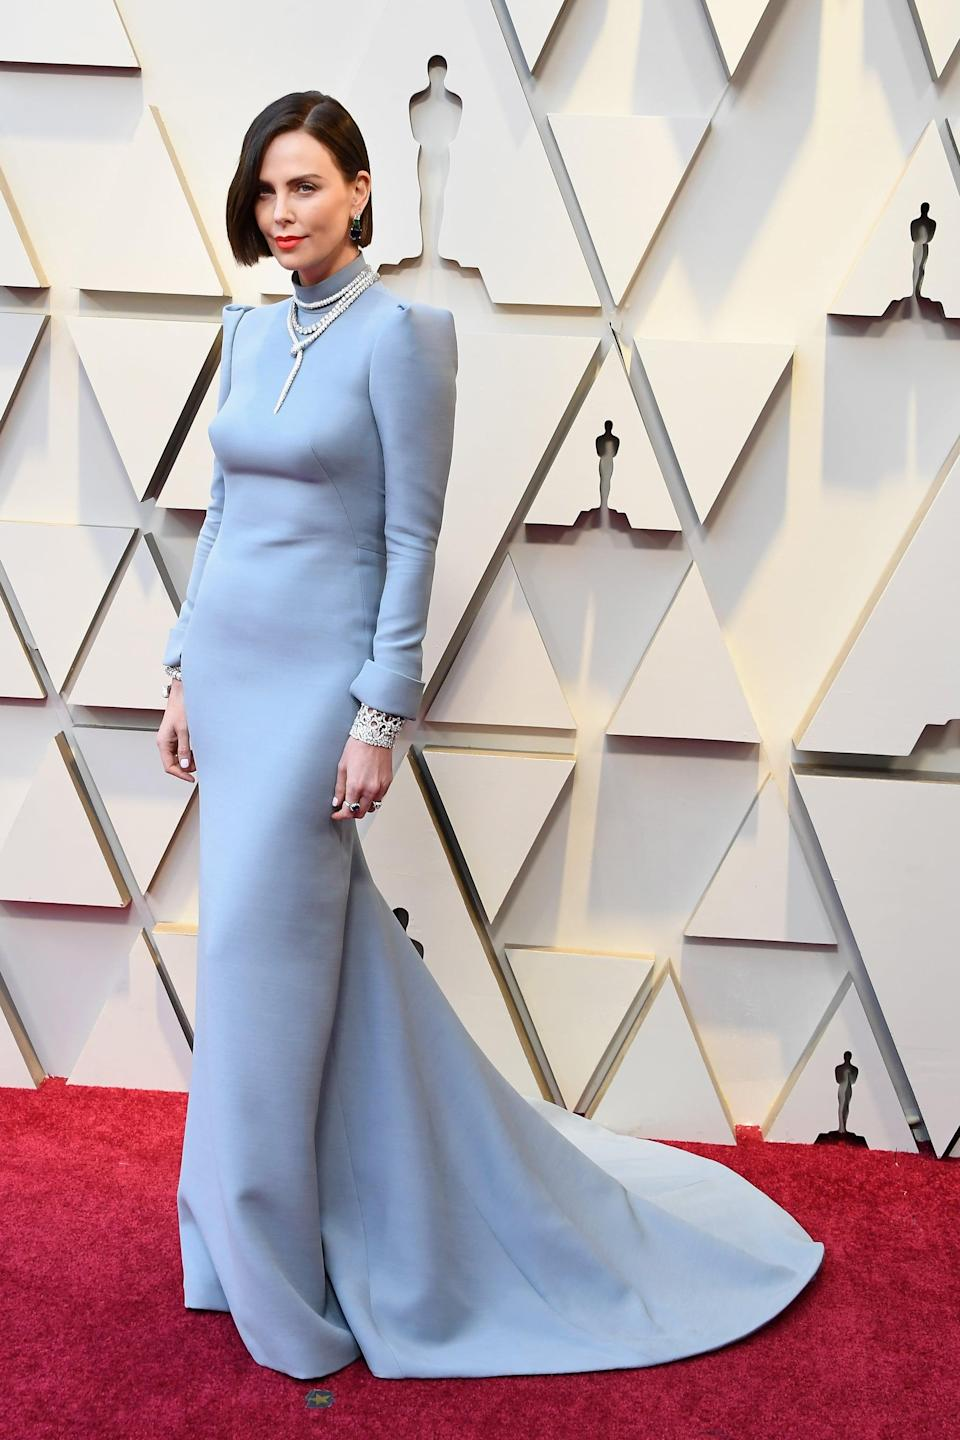 """<p><a rel=""""nofollow noopener"""" href=""""https://www.popsugar.com/fashion/Charlize-Theron-Dior-Dress-Oscars-2019-45832797"""" target=""""_blank"""" data-ylk=""""slk:Wearing a Dior Haute Couture dress with Bulgari jewels and Jimmy Choo shoes"""" class=""""link rapid-noclick-resp"""">Wearing a Dior Haute Couture dress with Bulgari jewels and Jimmy Choo shoes</a>.</p>"""